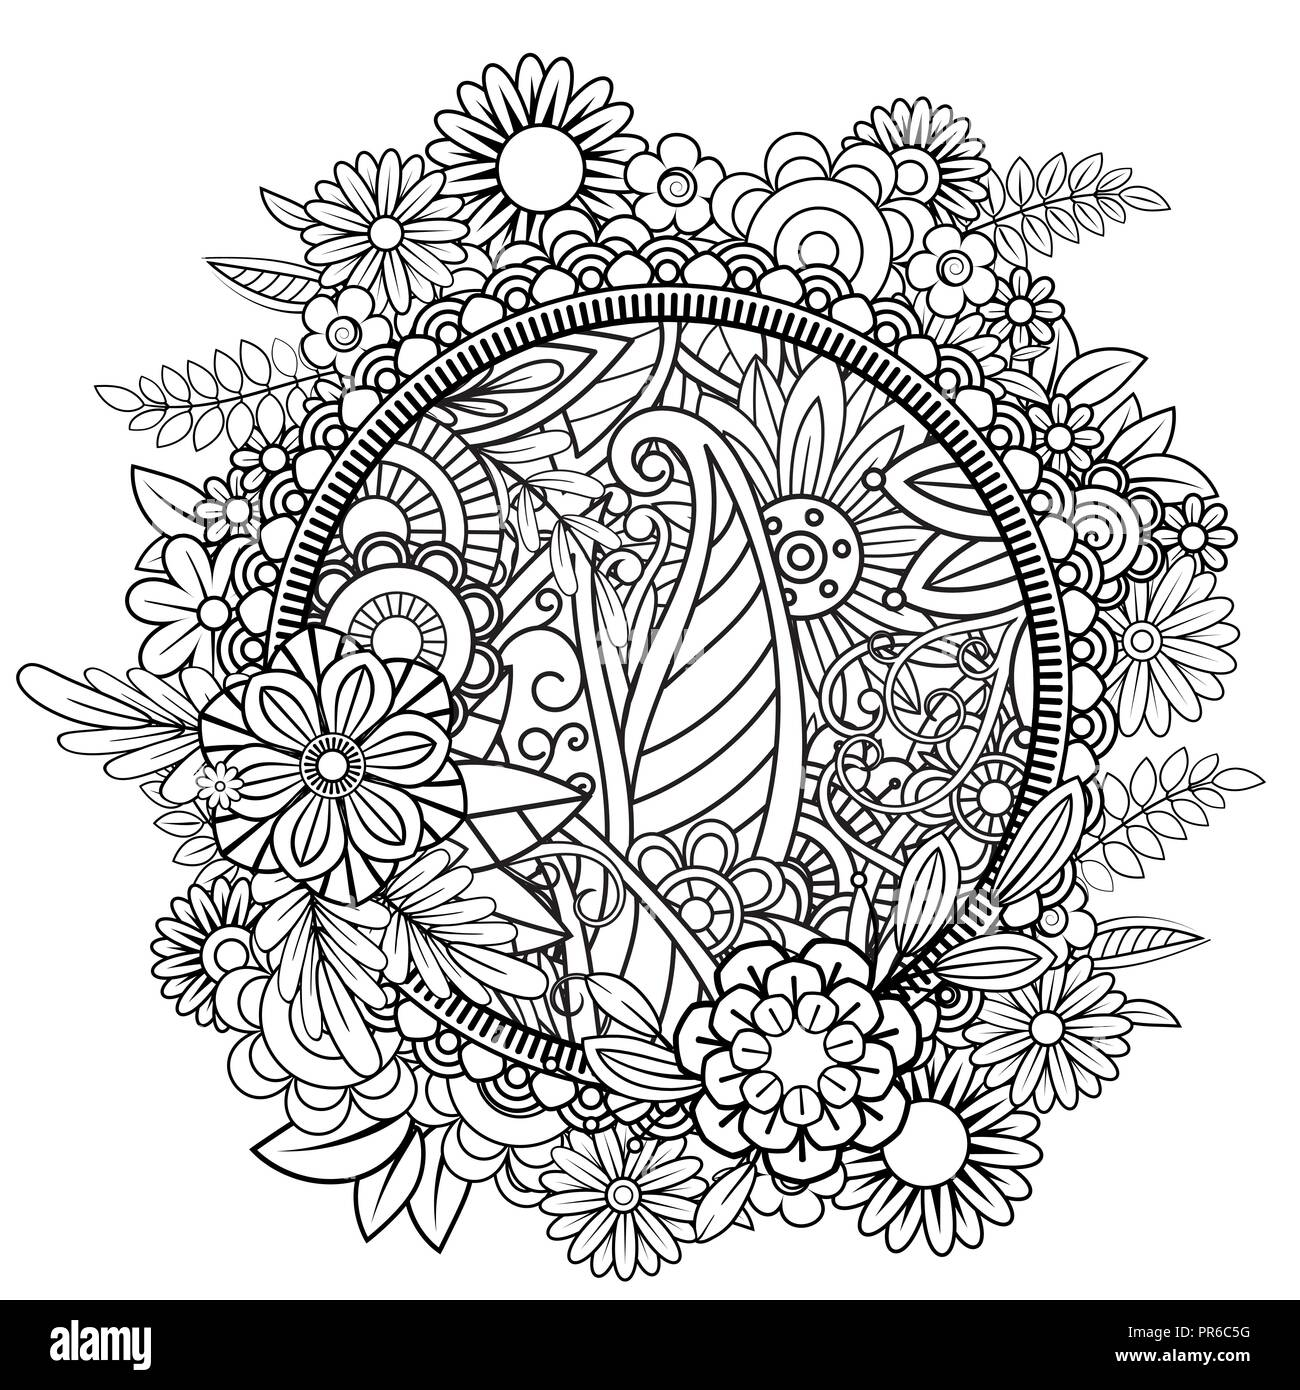 adult coloring page with flowers pattern black and white doodle wreath floral mandala bouquet line art vector illustration isolated on white background round design element PR6C5G